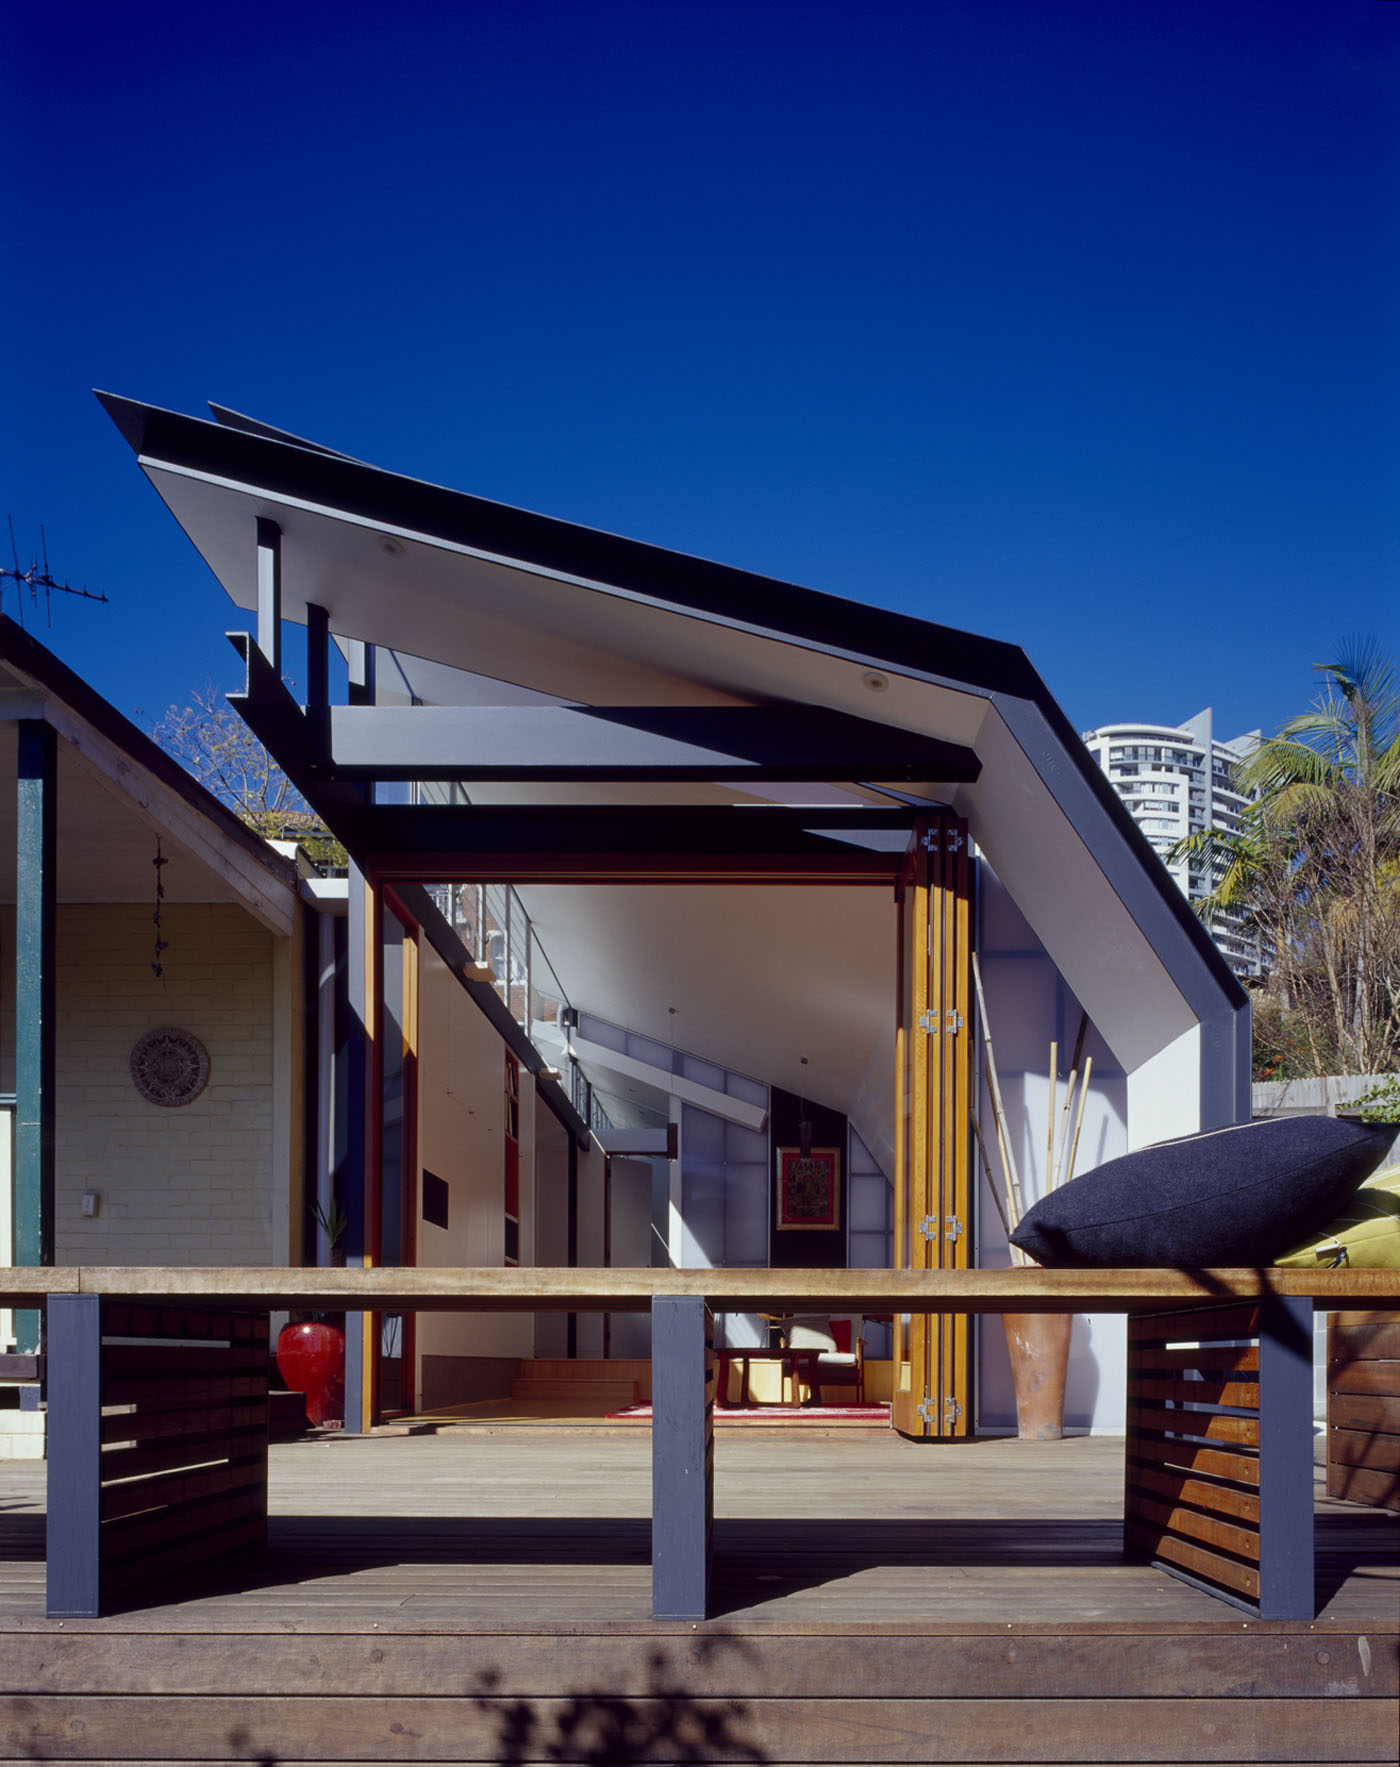 Wave House by Sydney award winning residential architecture firm Sam Crawford Architects. Front view of new addition with folded metal deck roof and clerestory windows